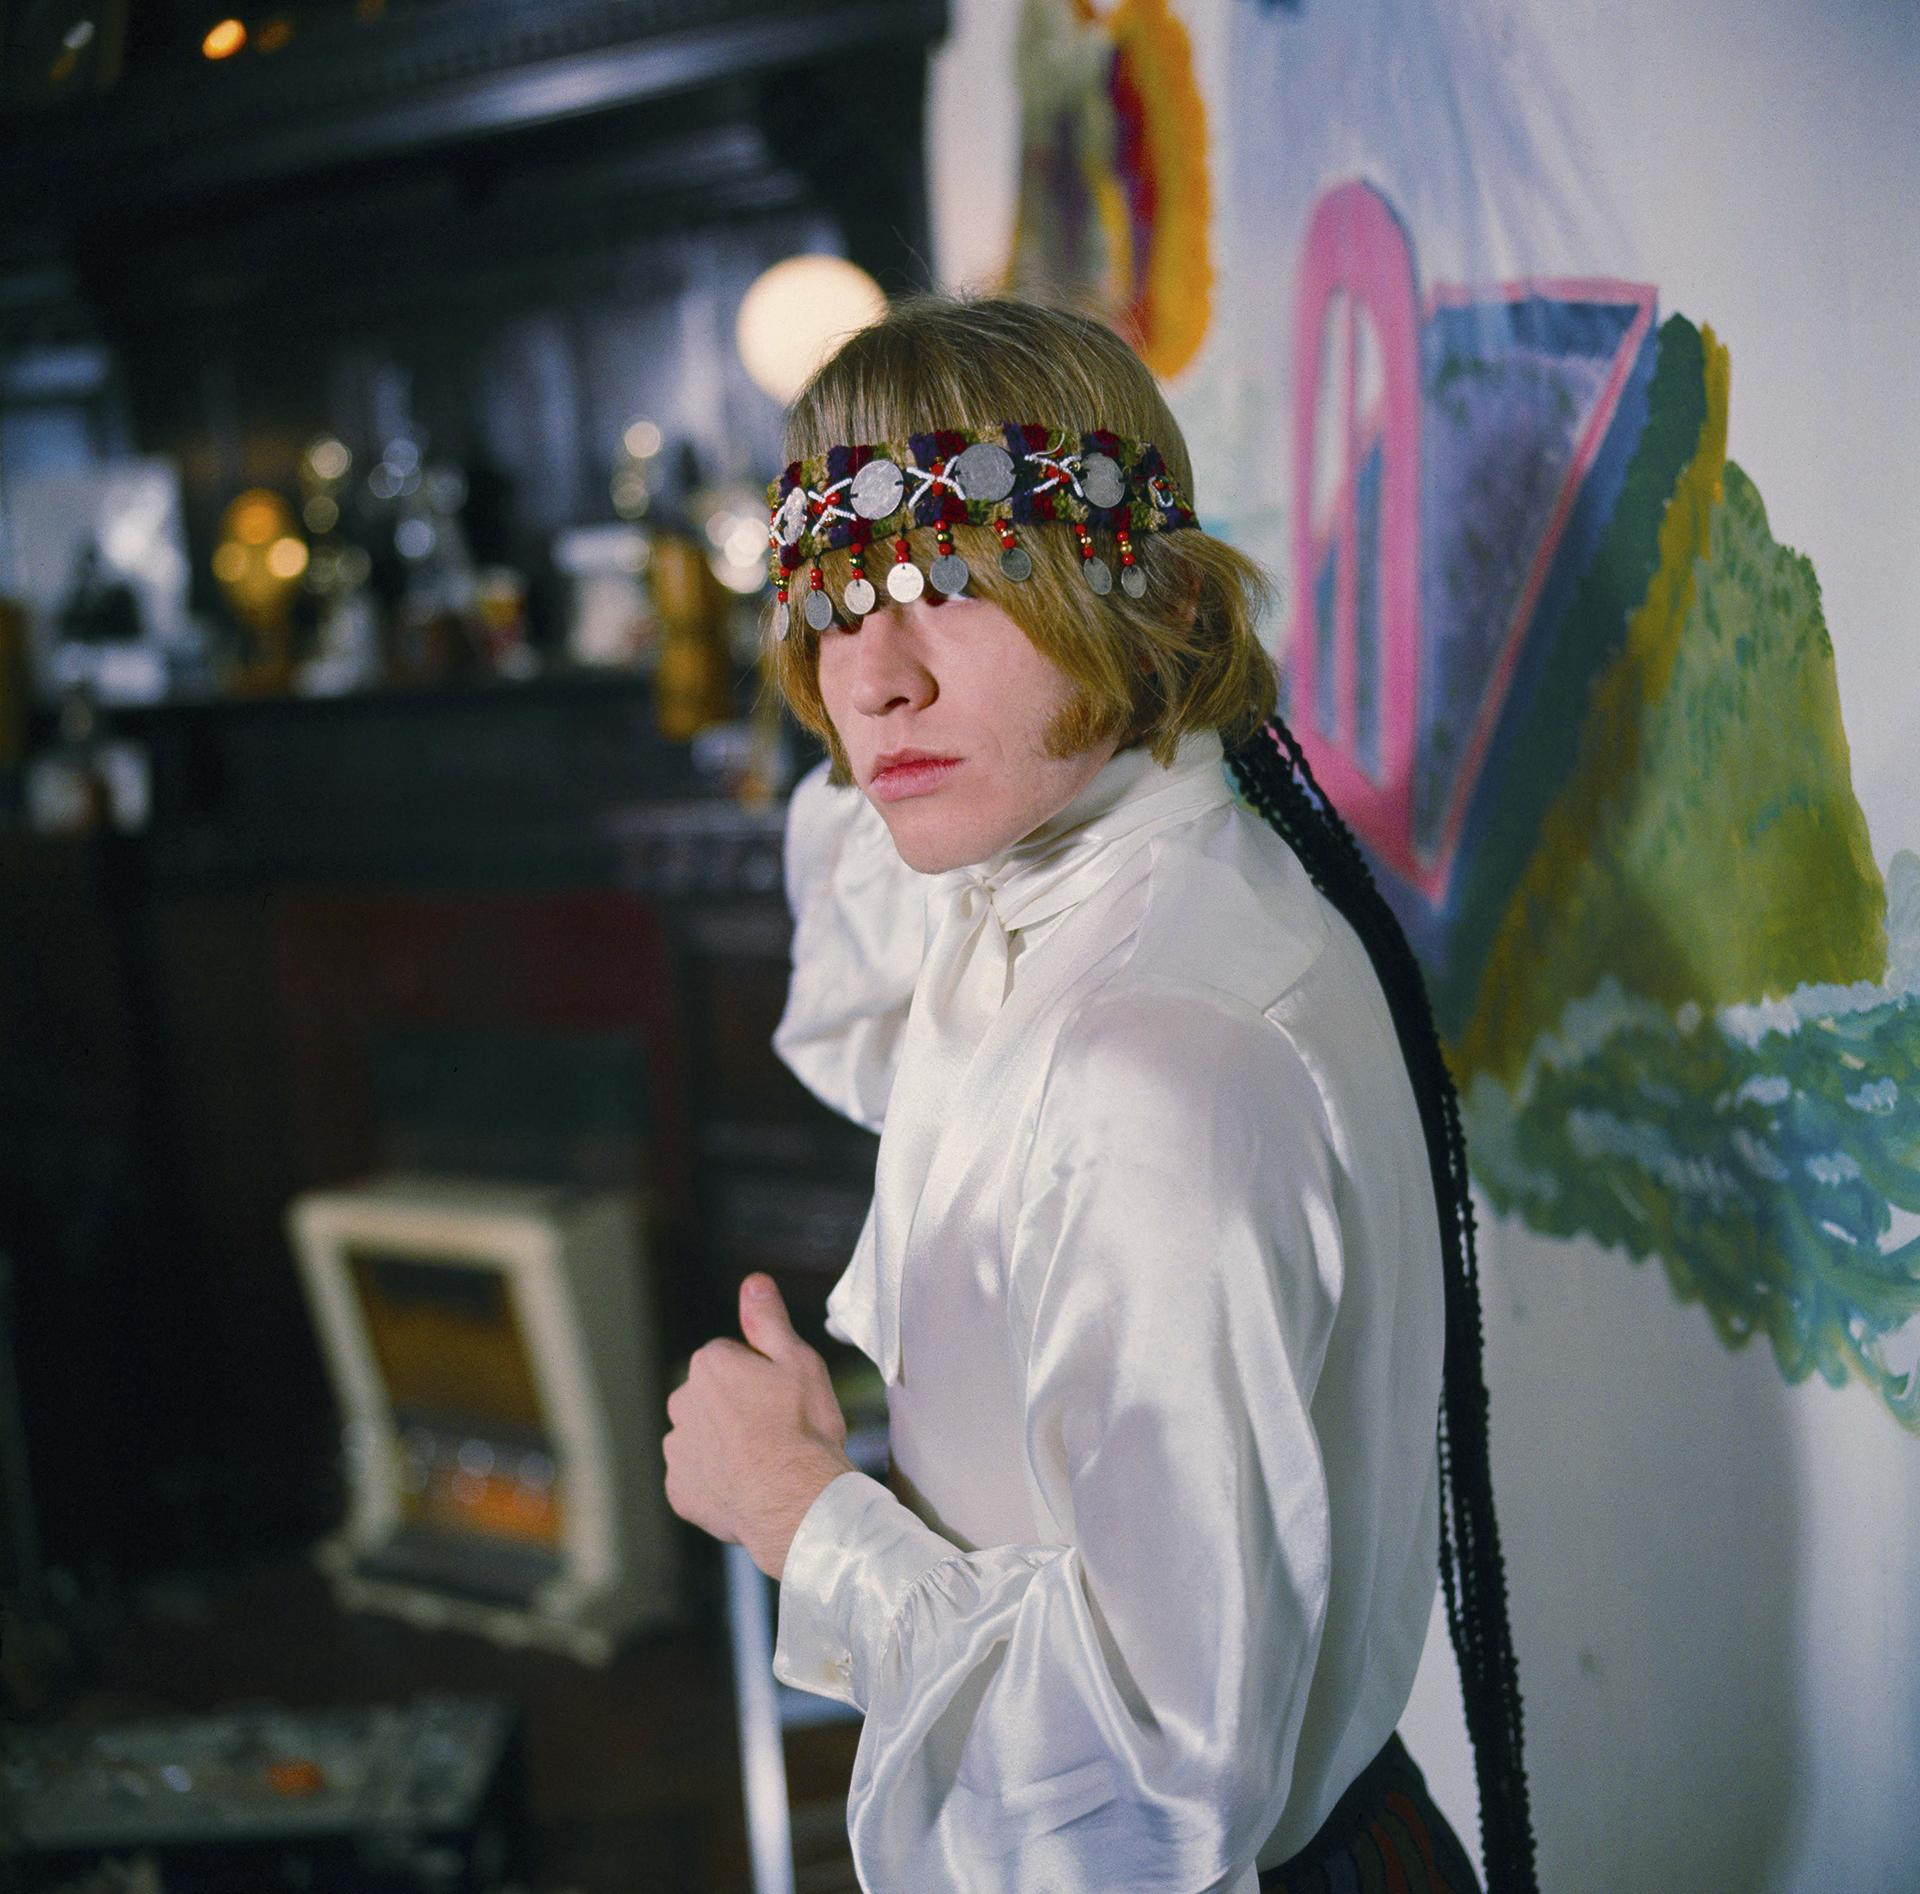 Brian Jones at home with North African headress in Courtfield Gardens, South Kensington